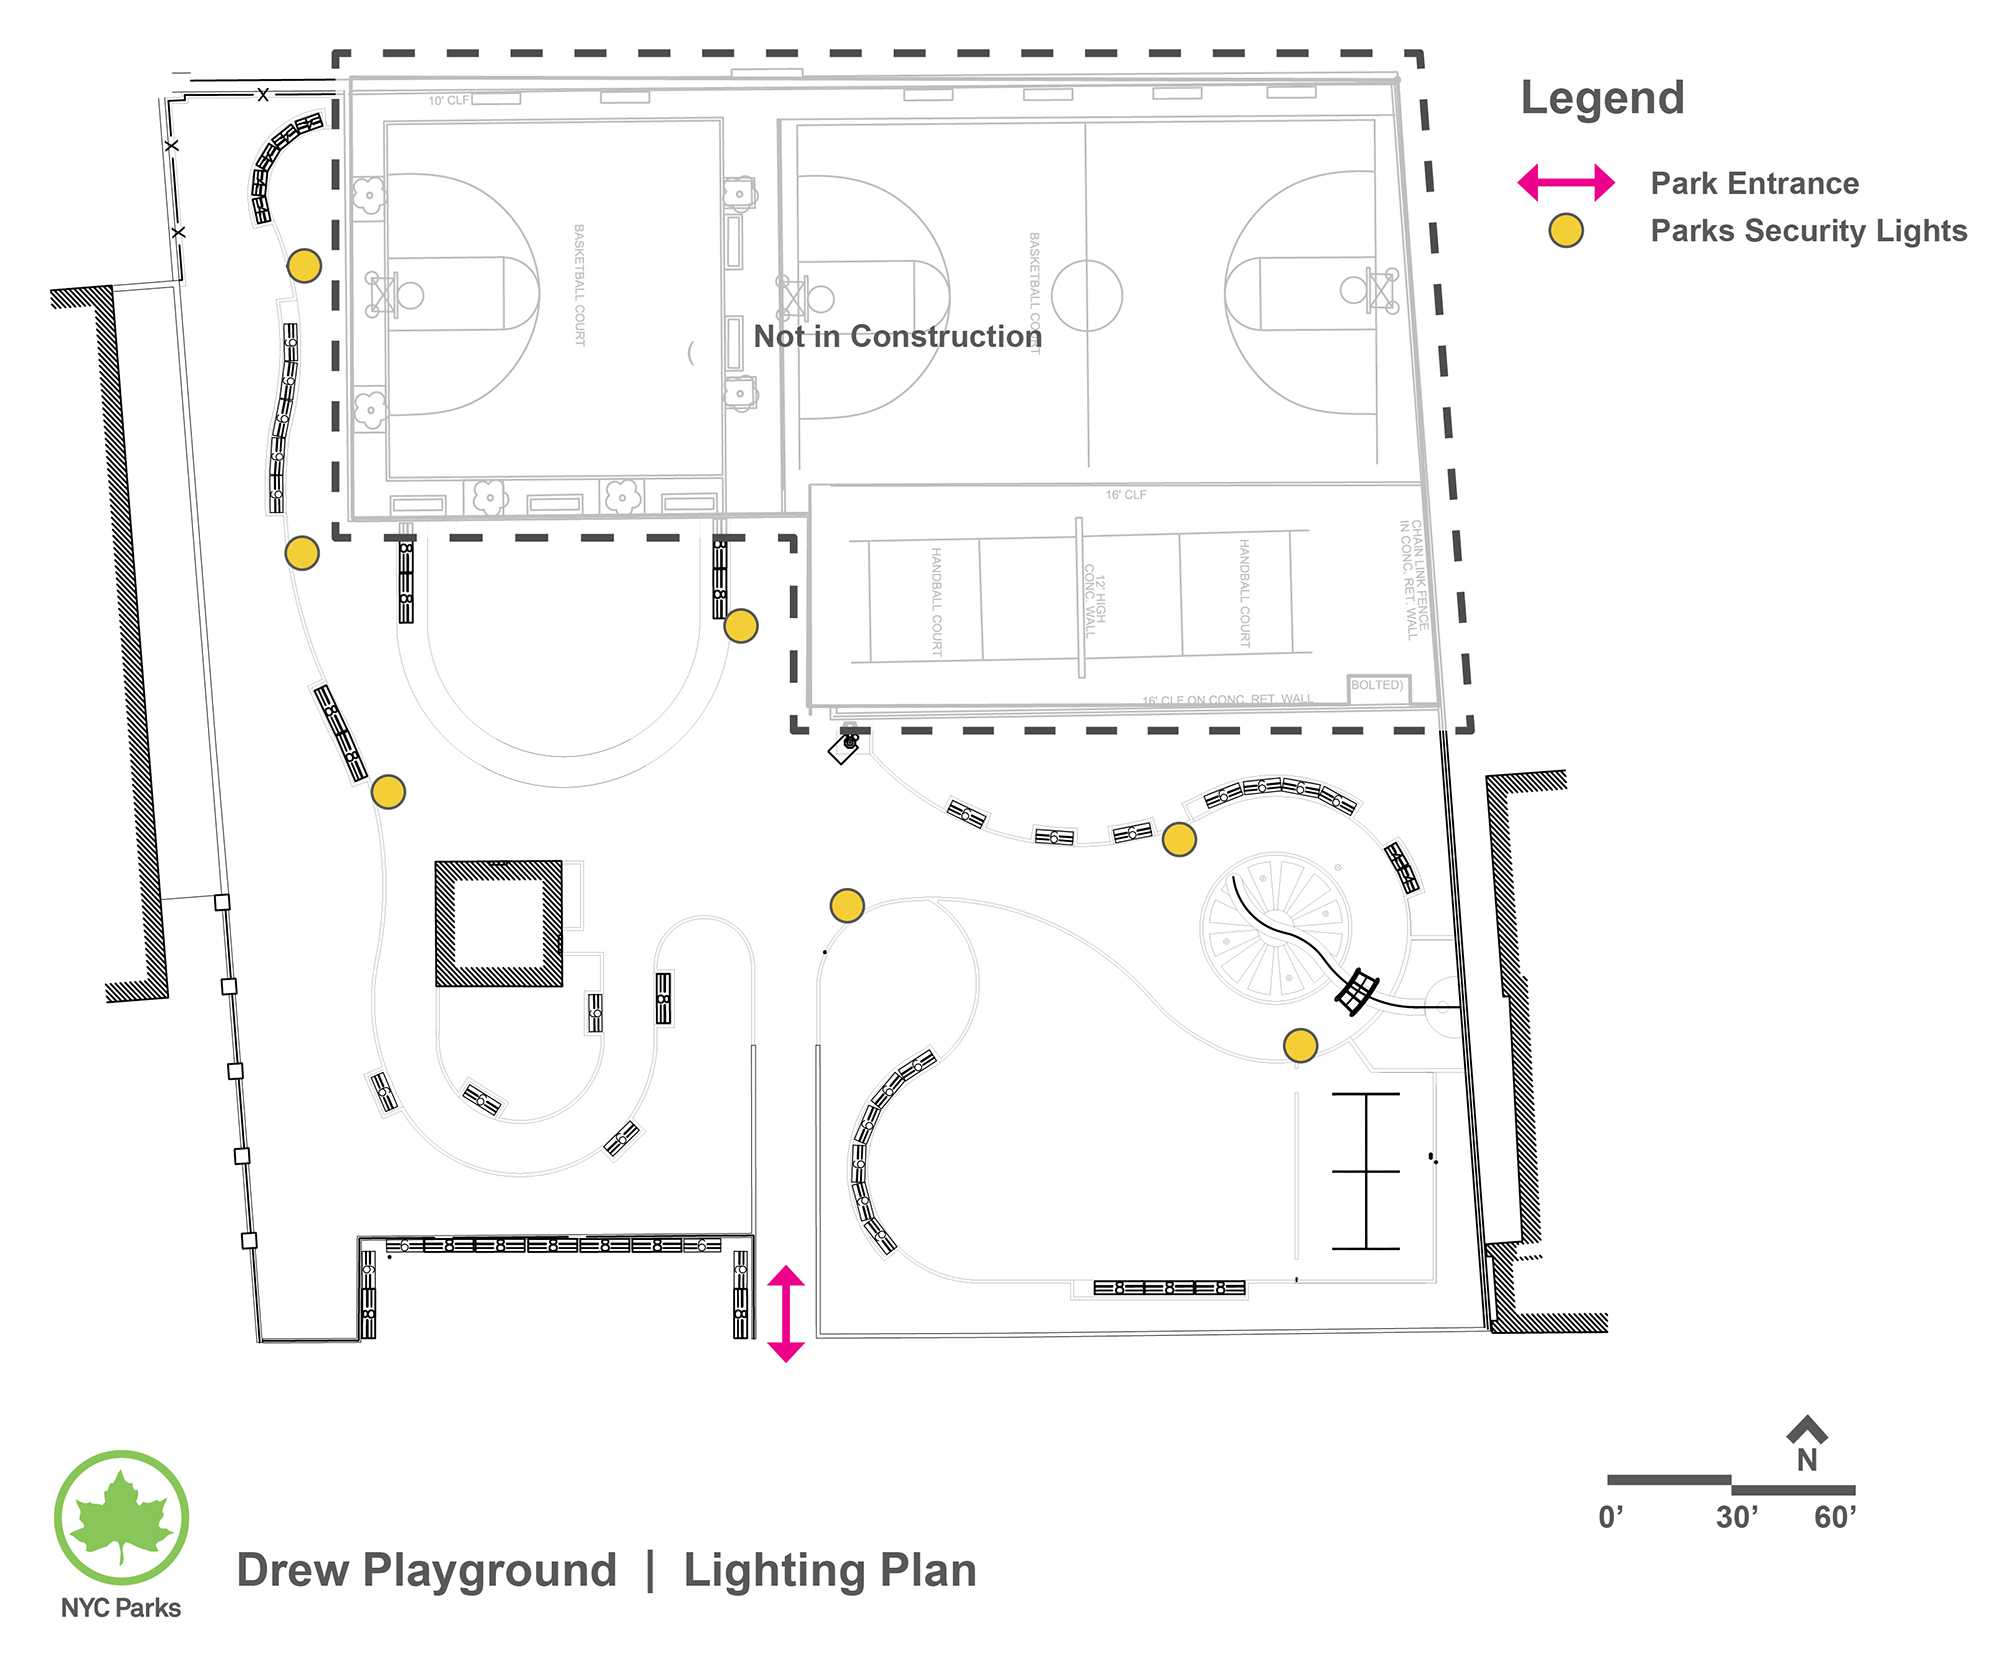 Design of Drew Playground Park Security Lighting Construction